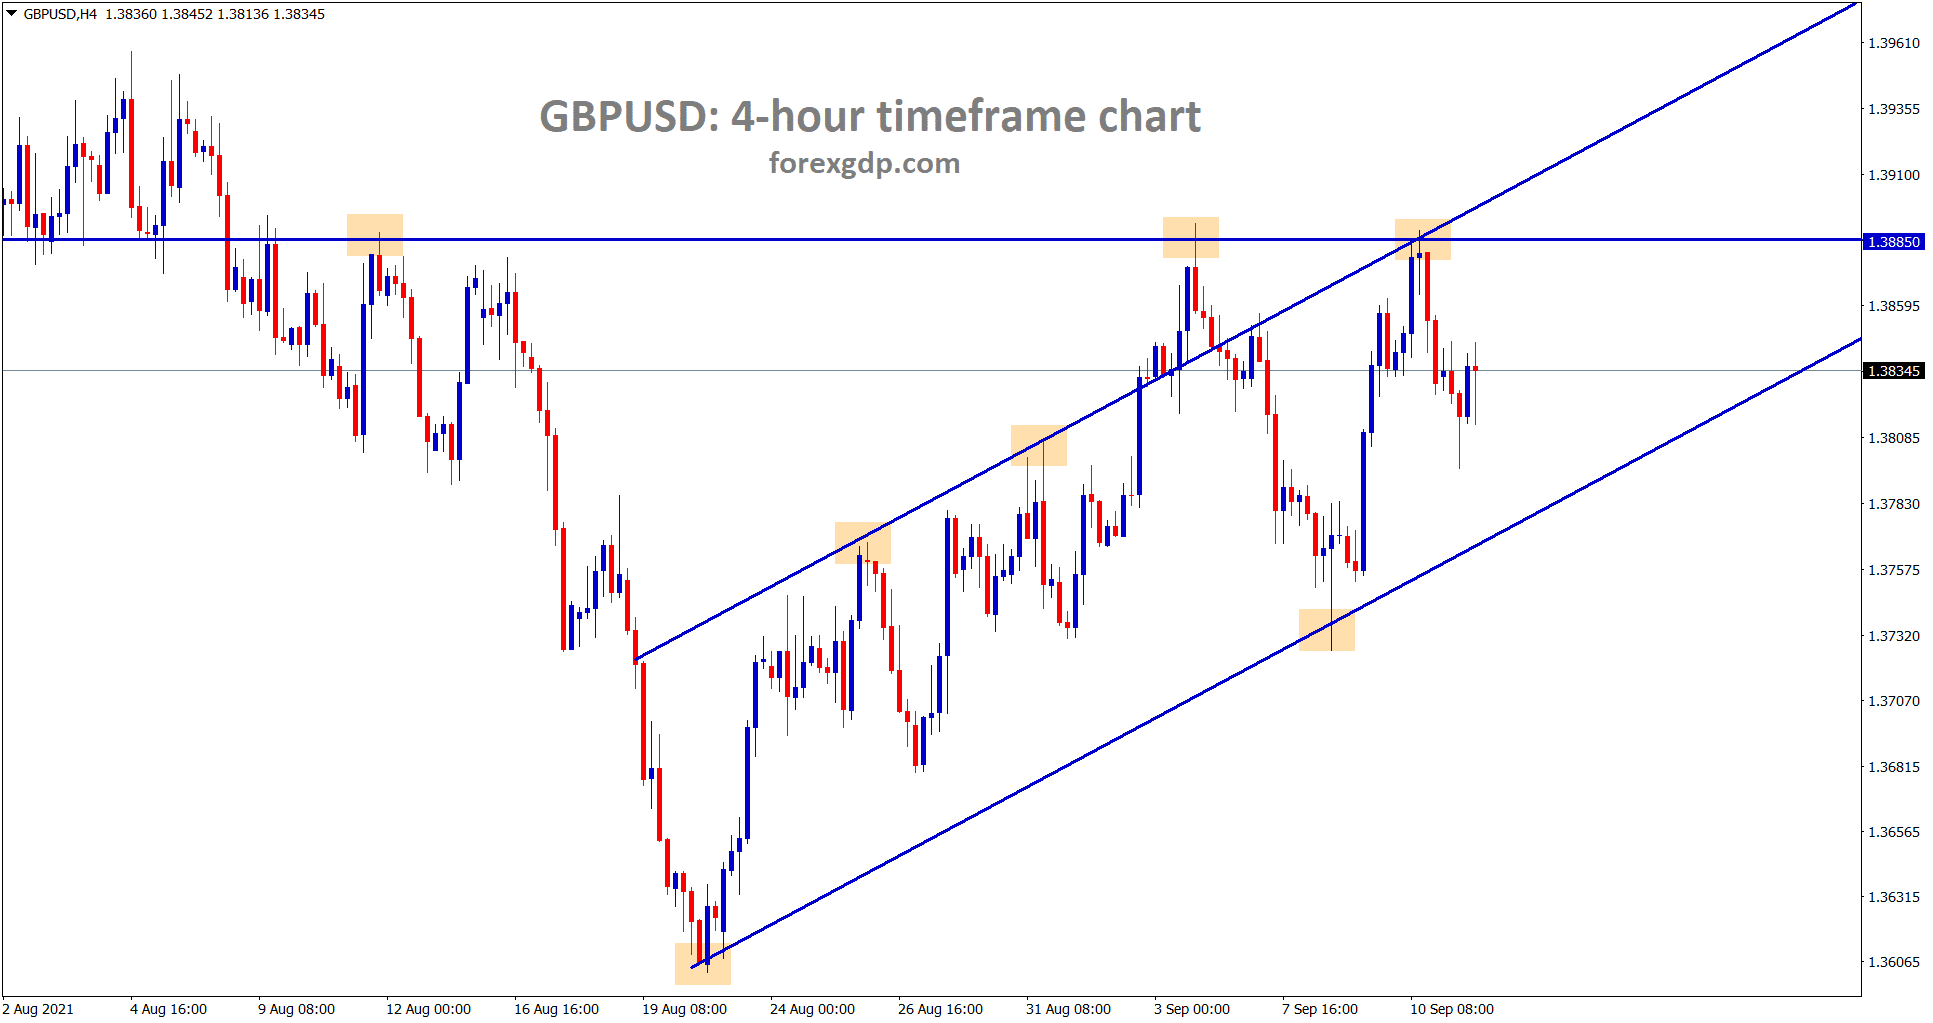 GBPUSD is moving in an Ascending channel line